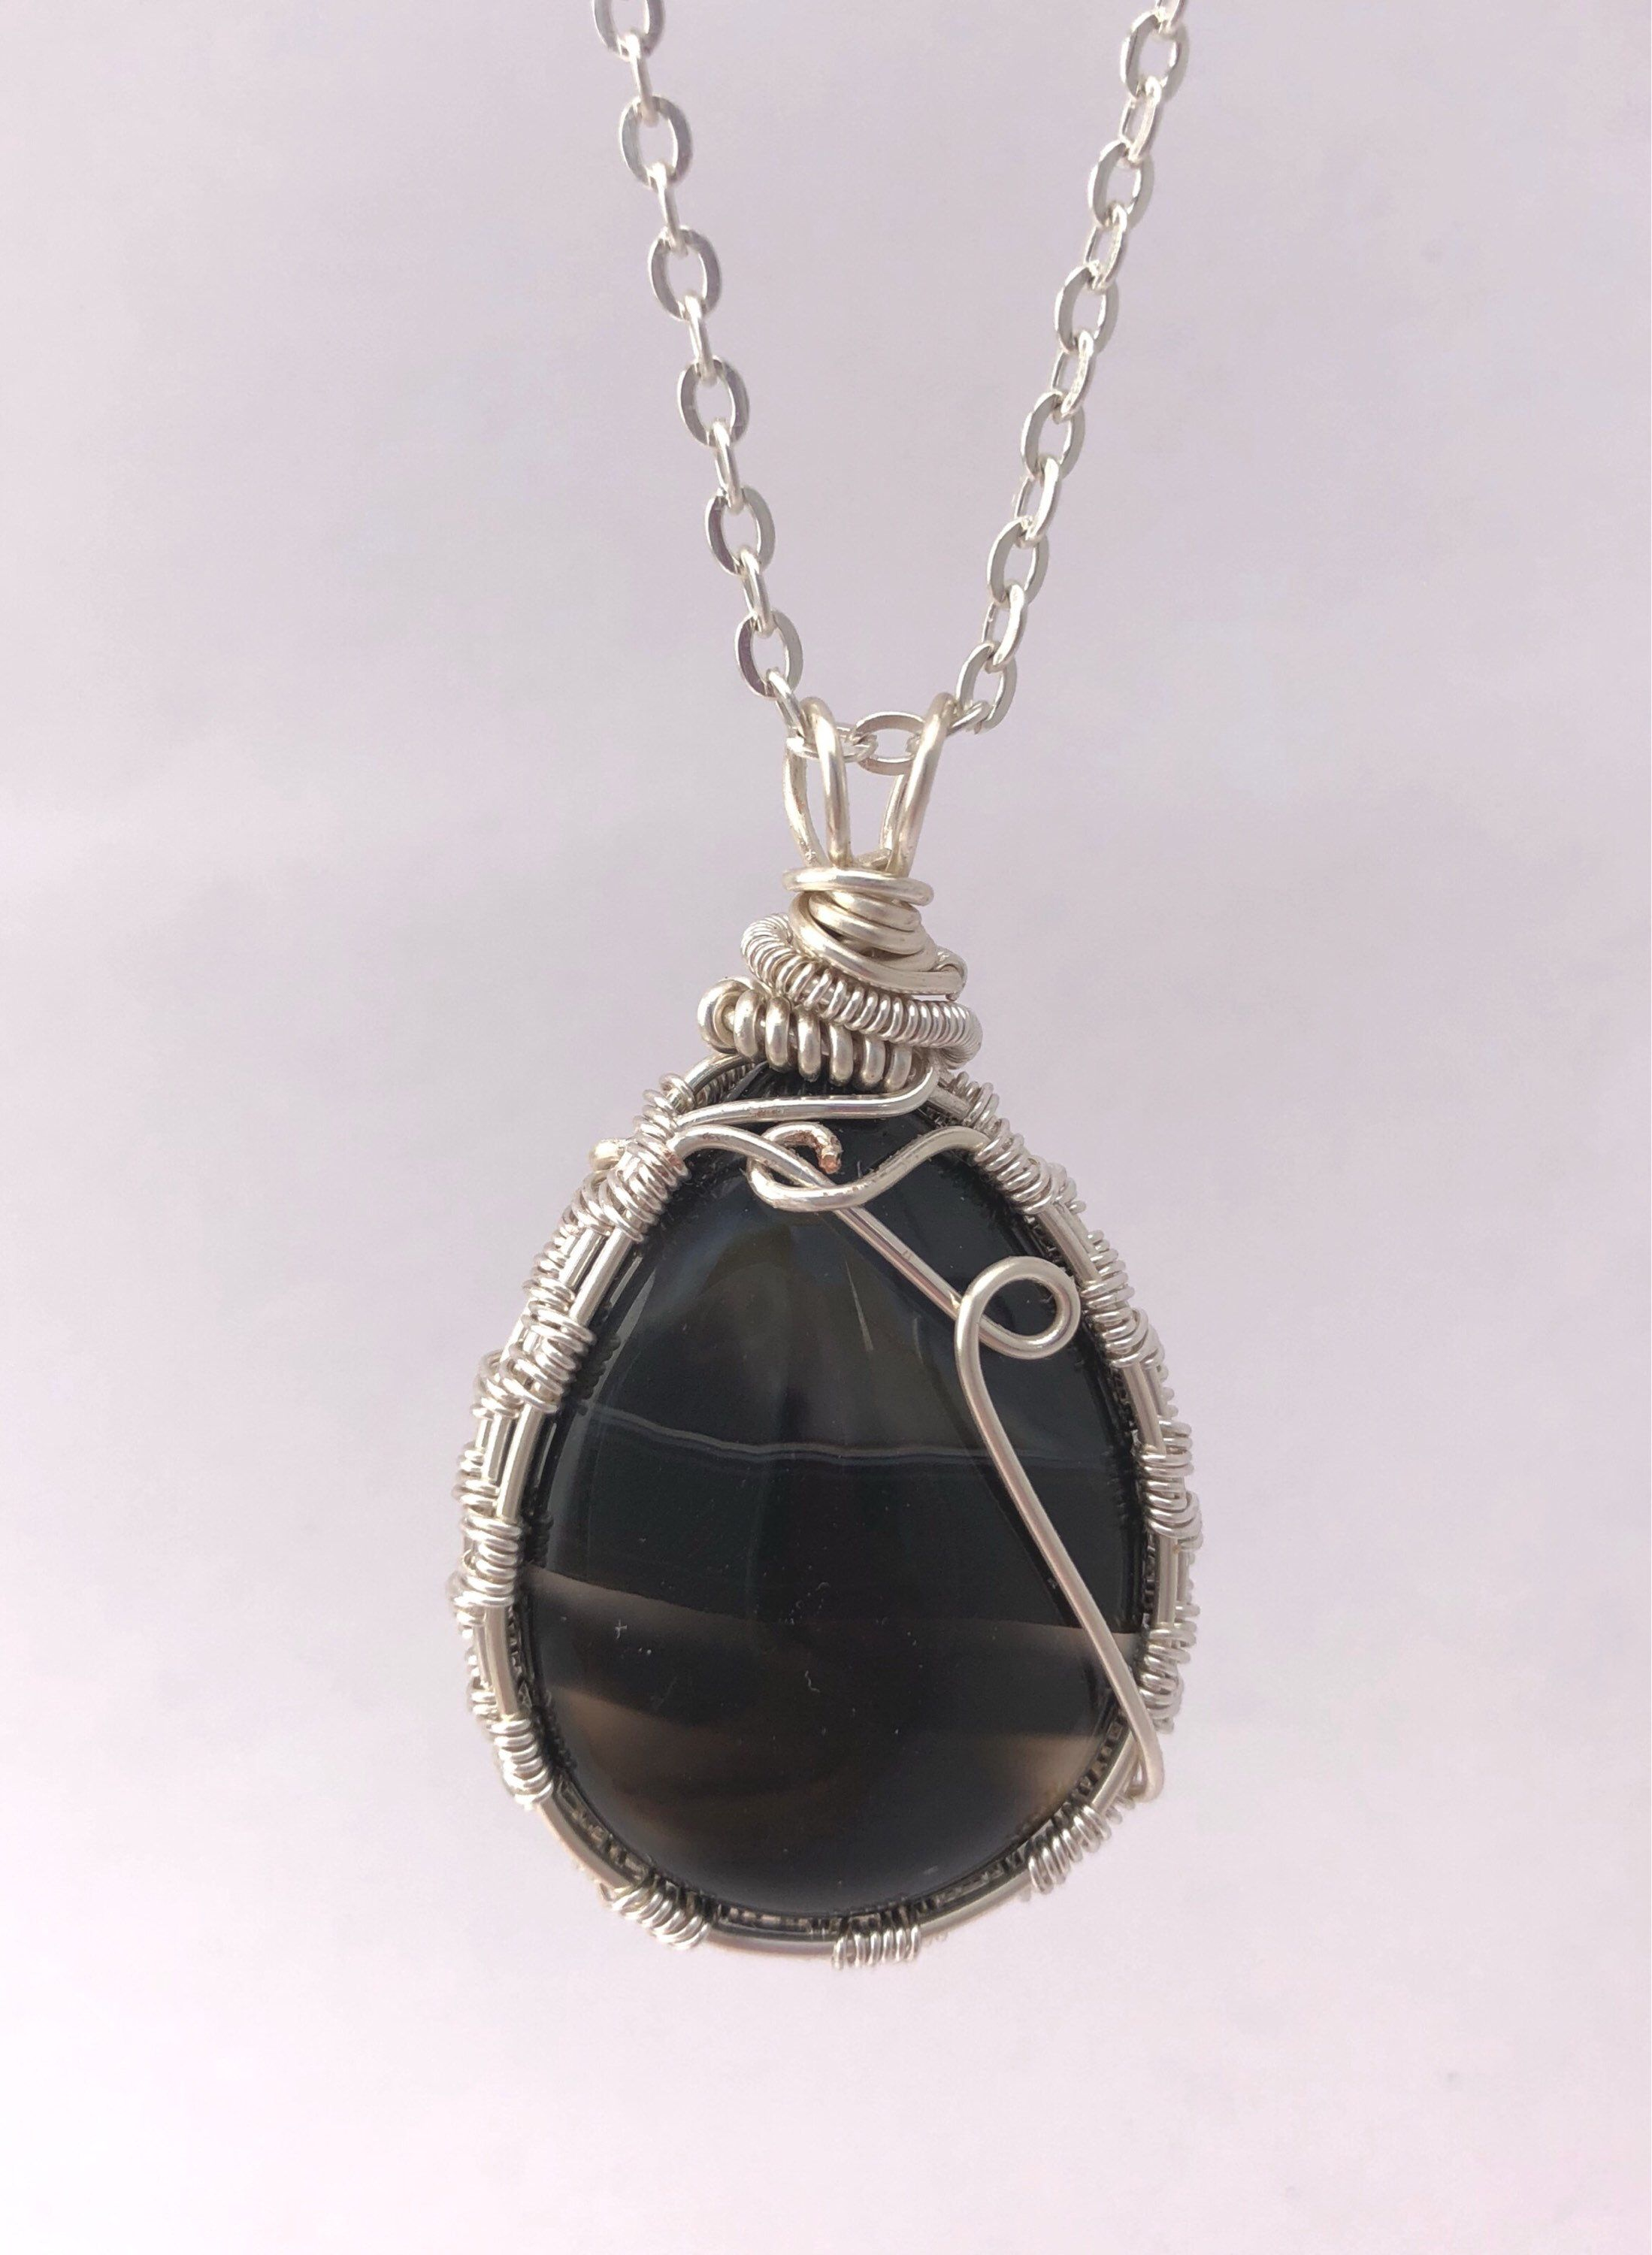 legacies oval pet onyx daybreak pendant more engraved photo necklace gem agate black product